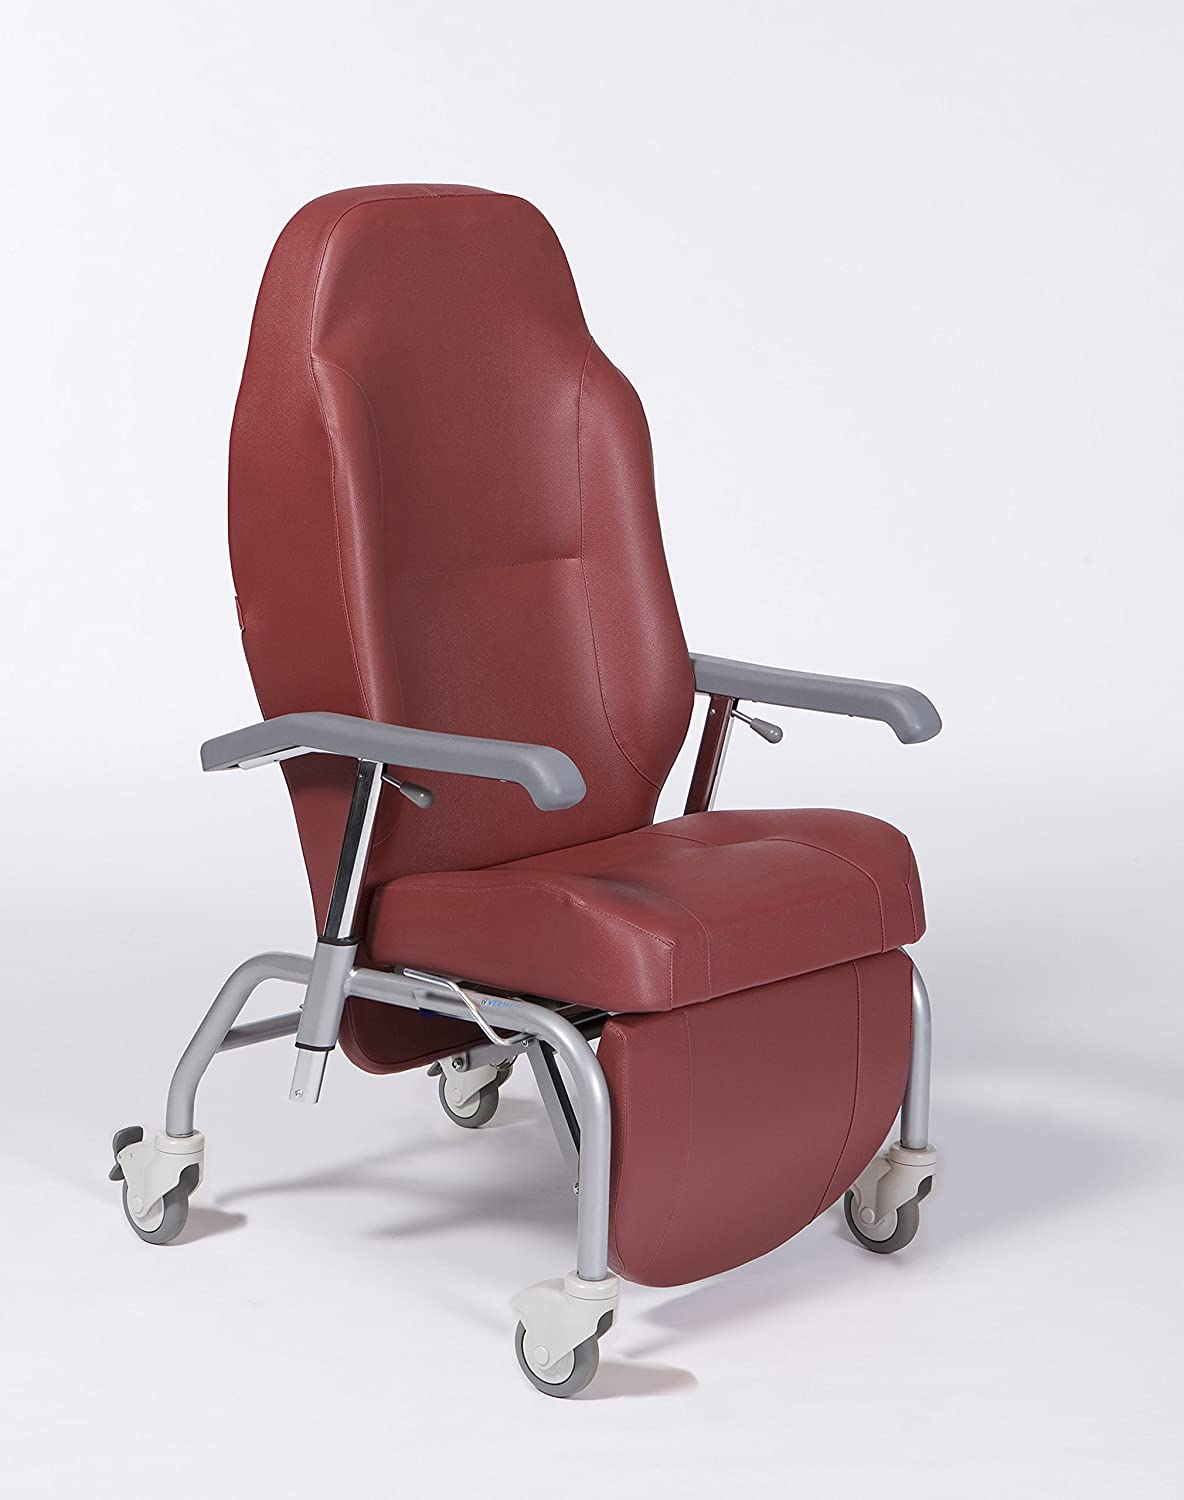 SILLON GERIATRICO MOD NORMANDIE color rojo, incluye kit ...